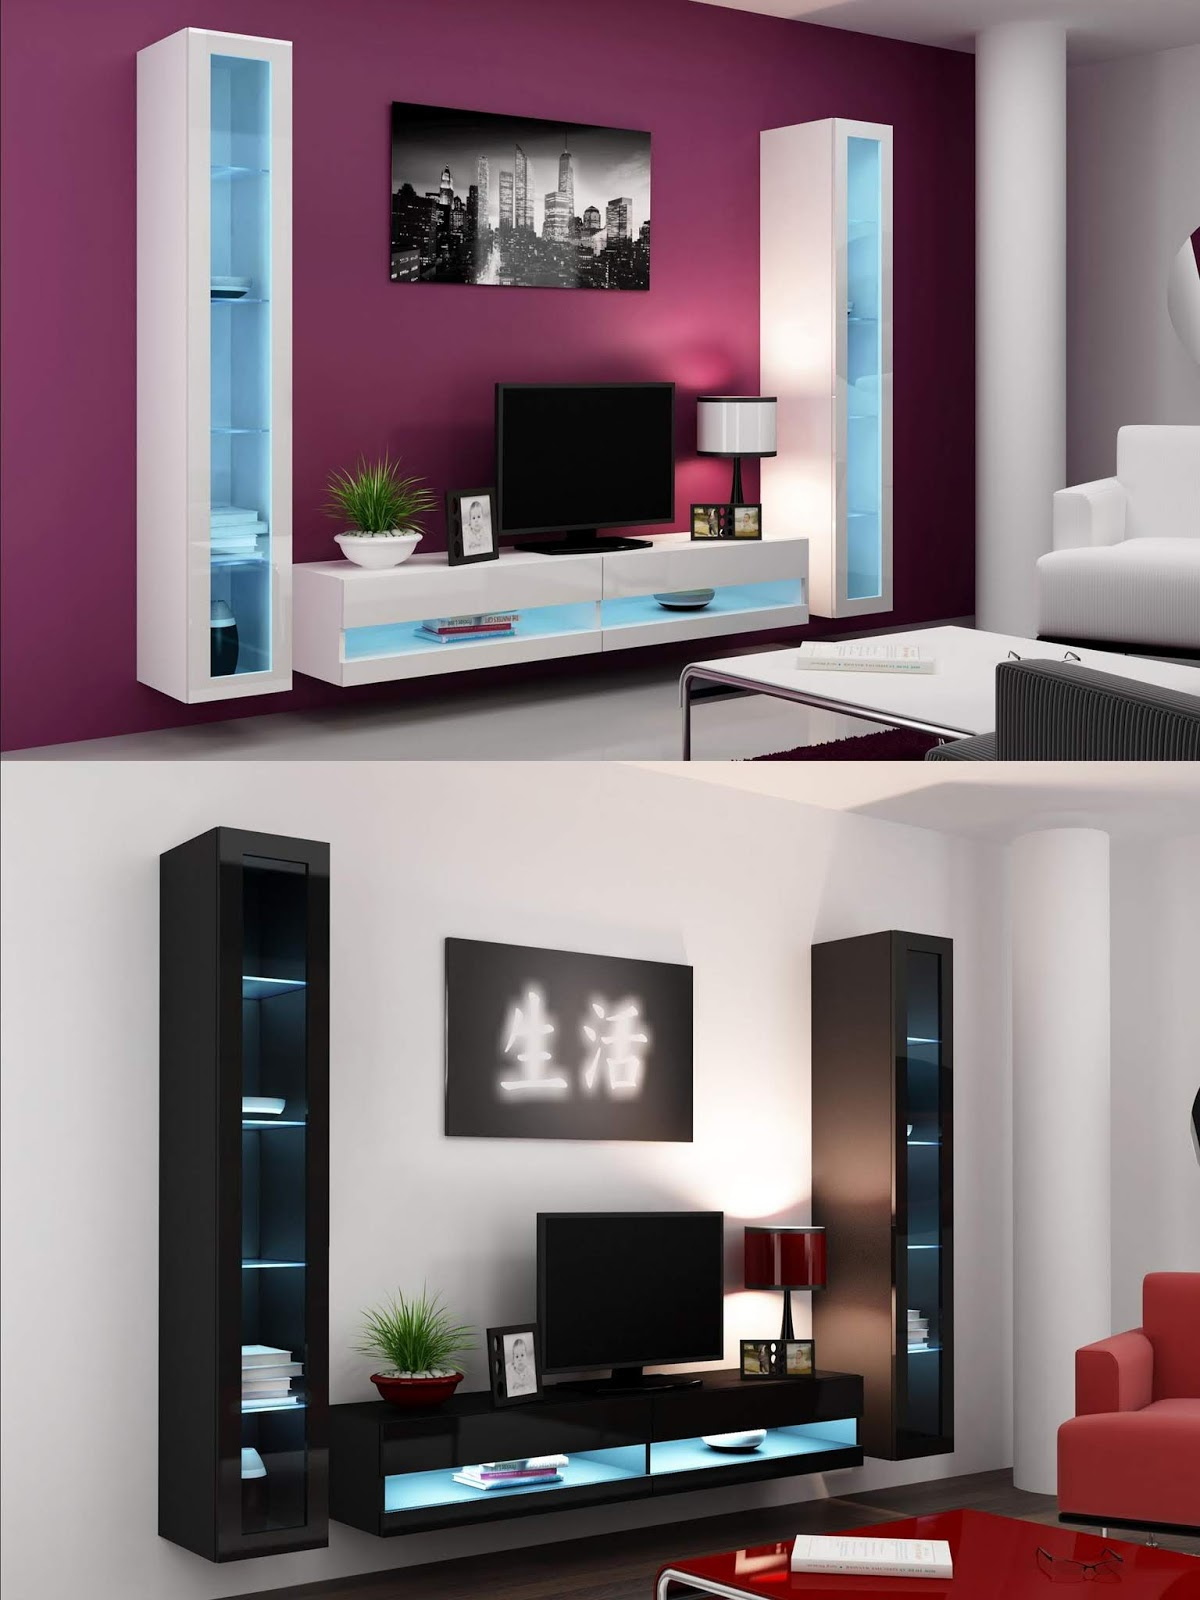 Surprising Inspiration of TV Room Ideas